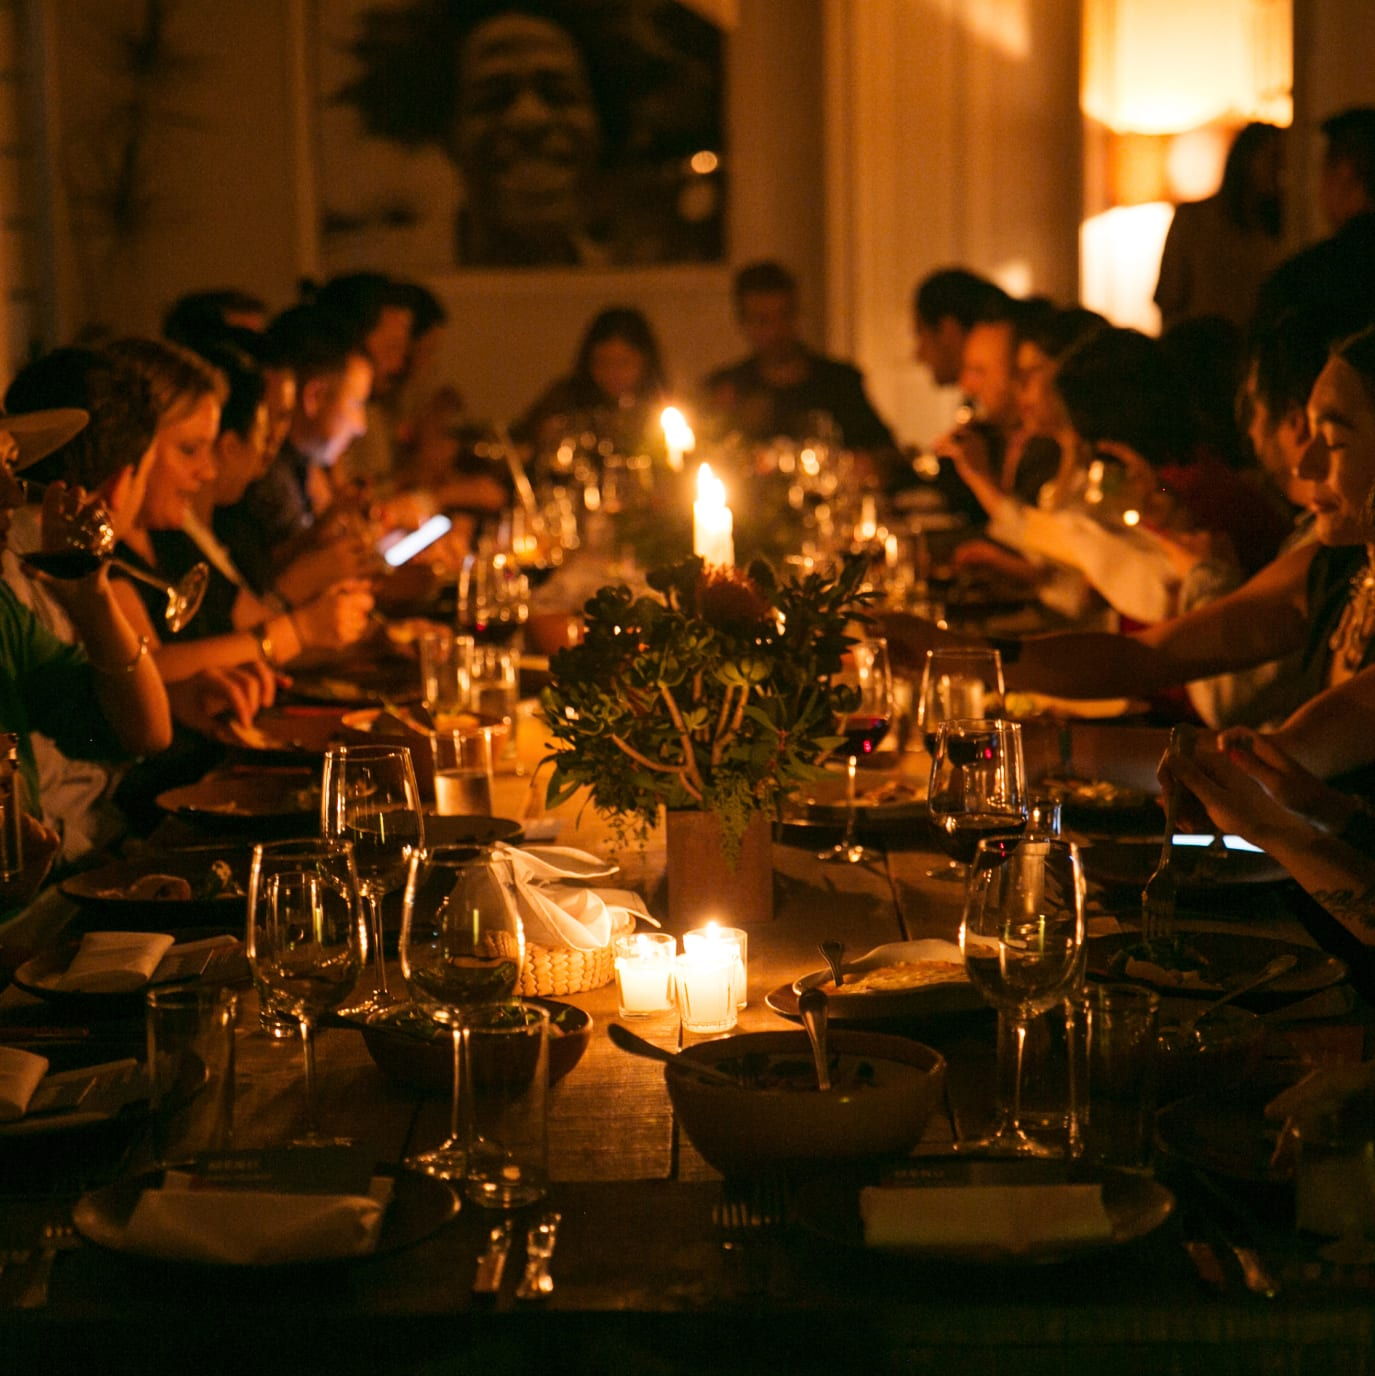 A large group of people eating dinner and chatting around a candle lit table.